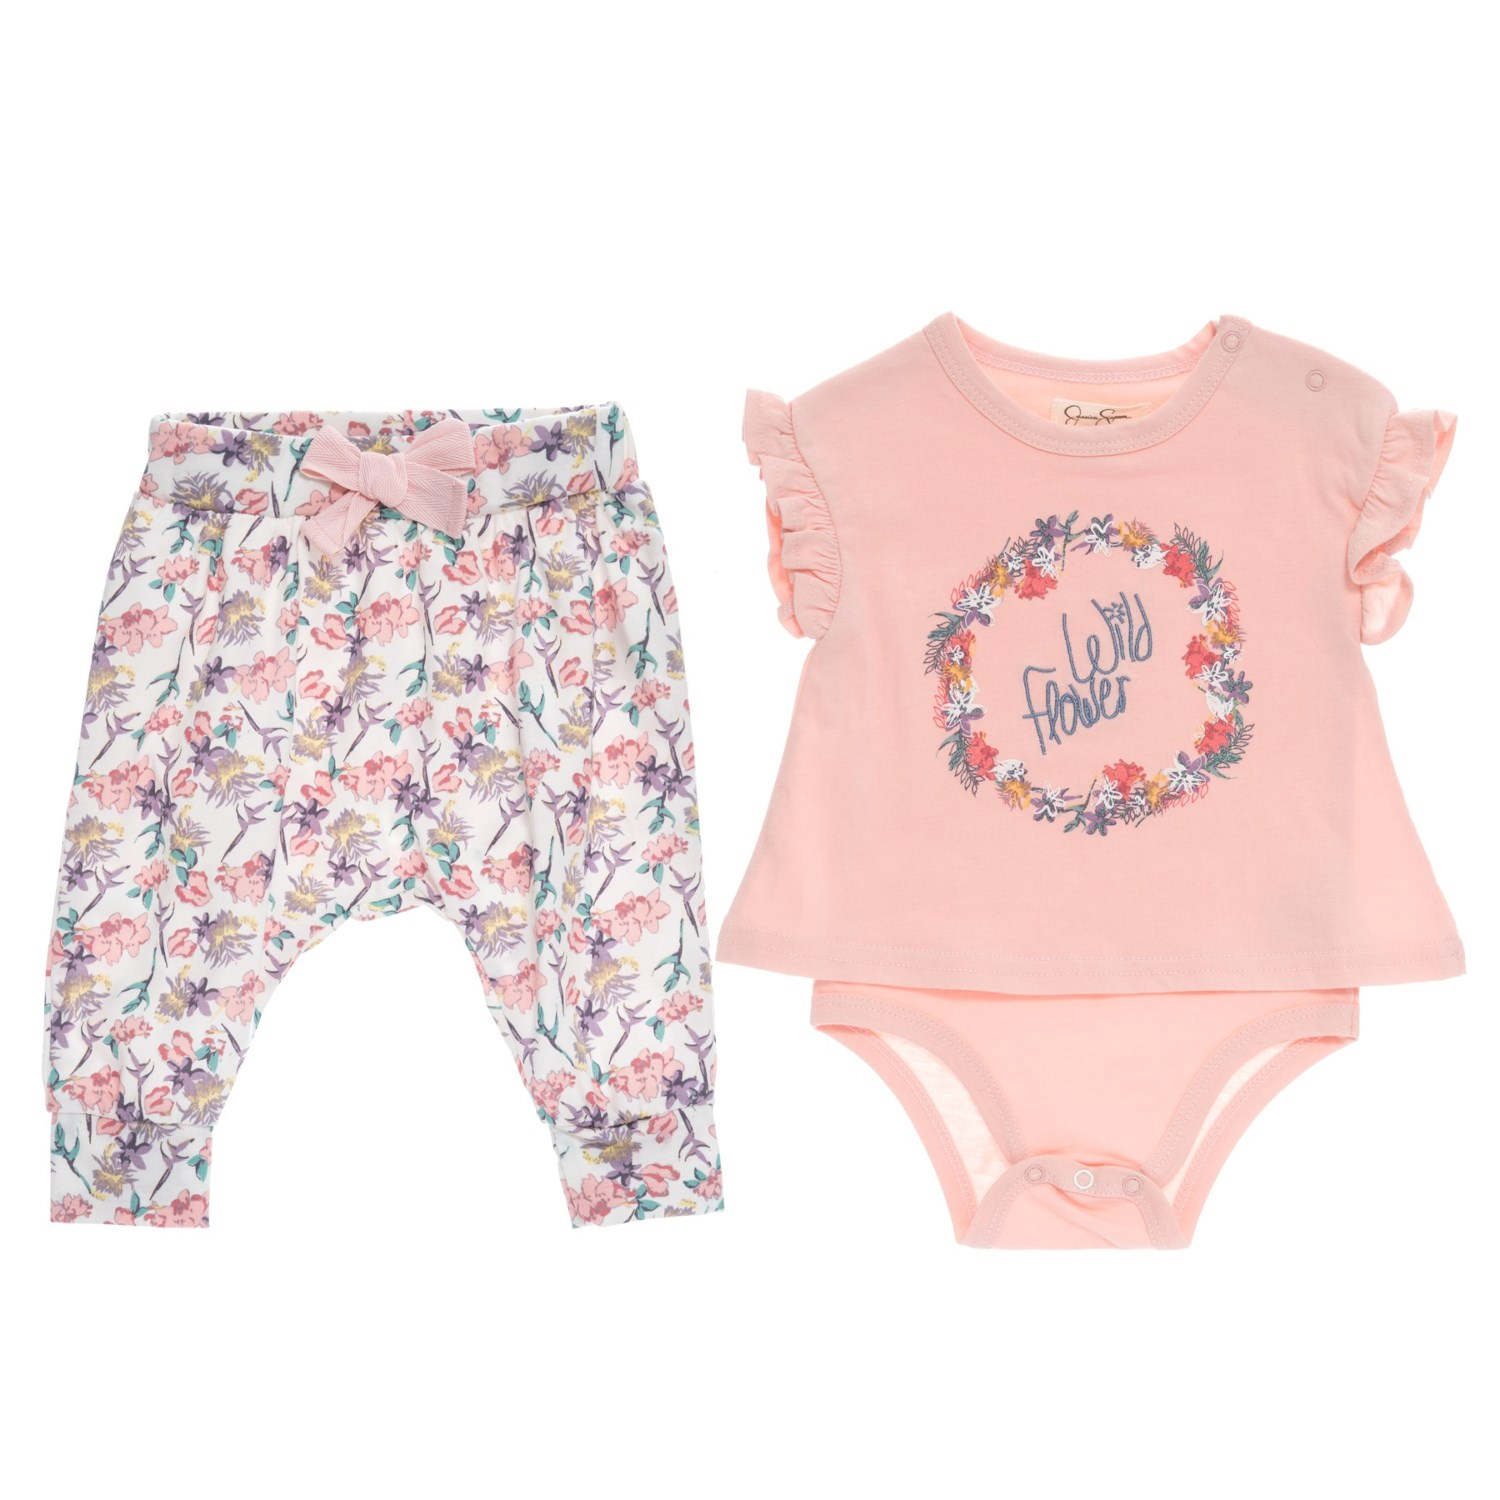 Jessica Simpson Baby Bodysuit And Pants Set For Girls Save 27